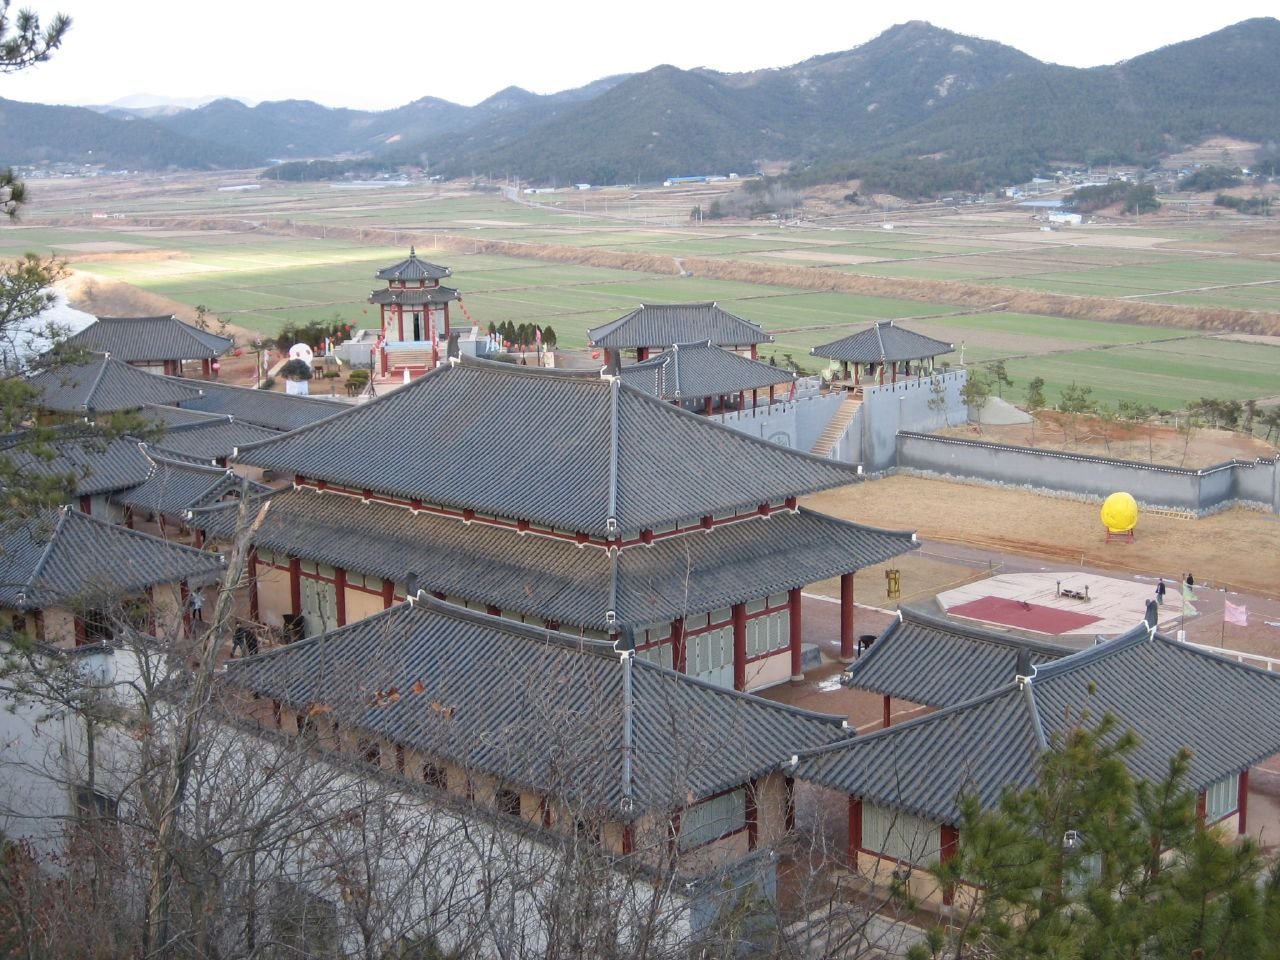 Yongin MBC Dramia - South Korea Filming Location